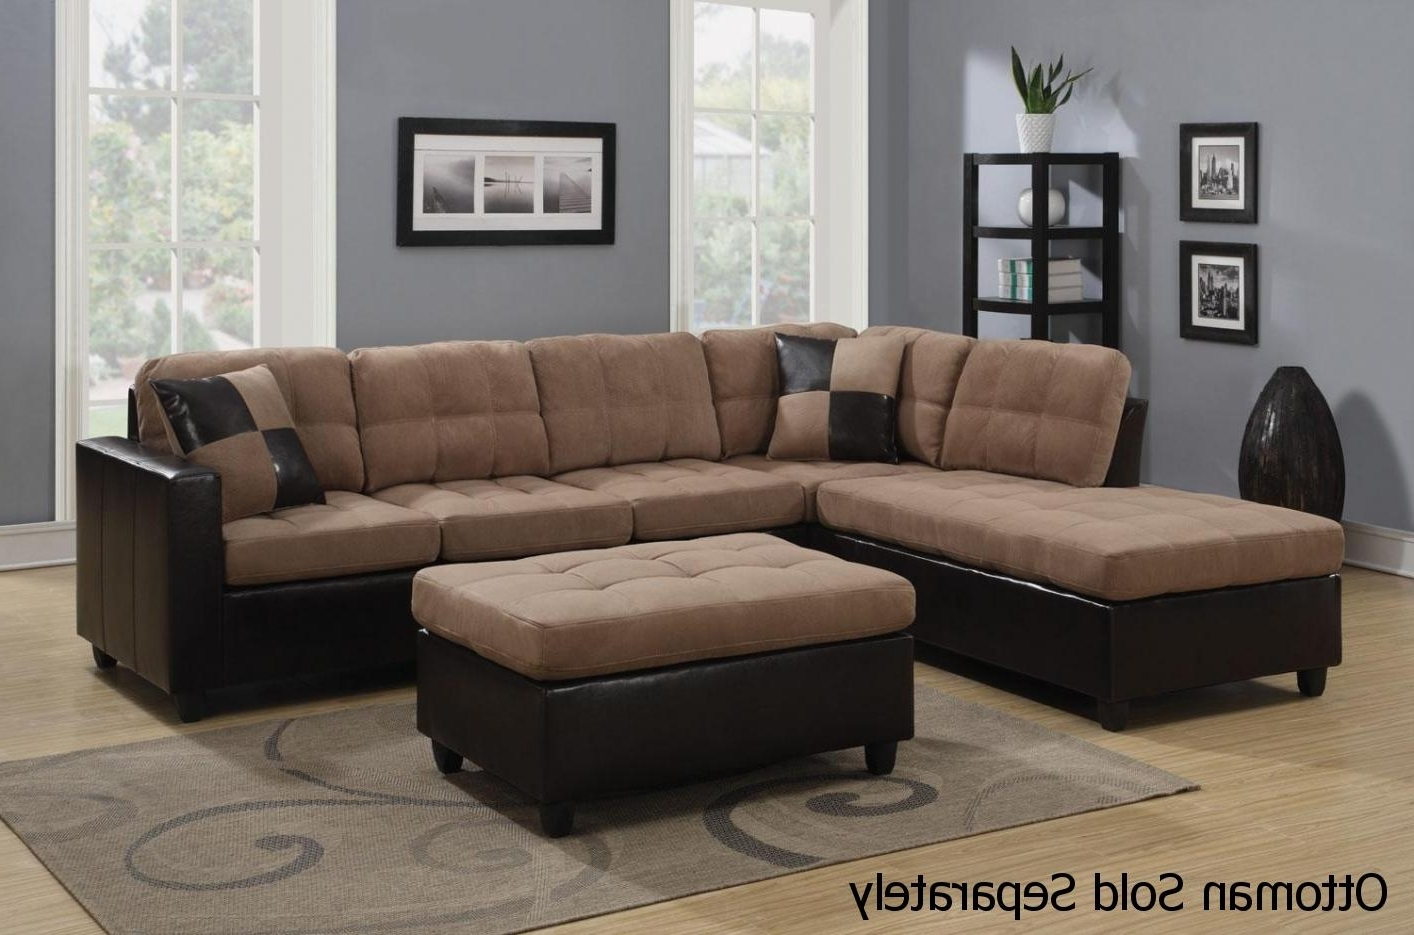 Sectional Sofas Regarding Newest Mallory Beige Leather Sectional Sofa – Steal A Sofa Furniture (View 15 of 20)